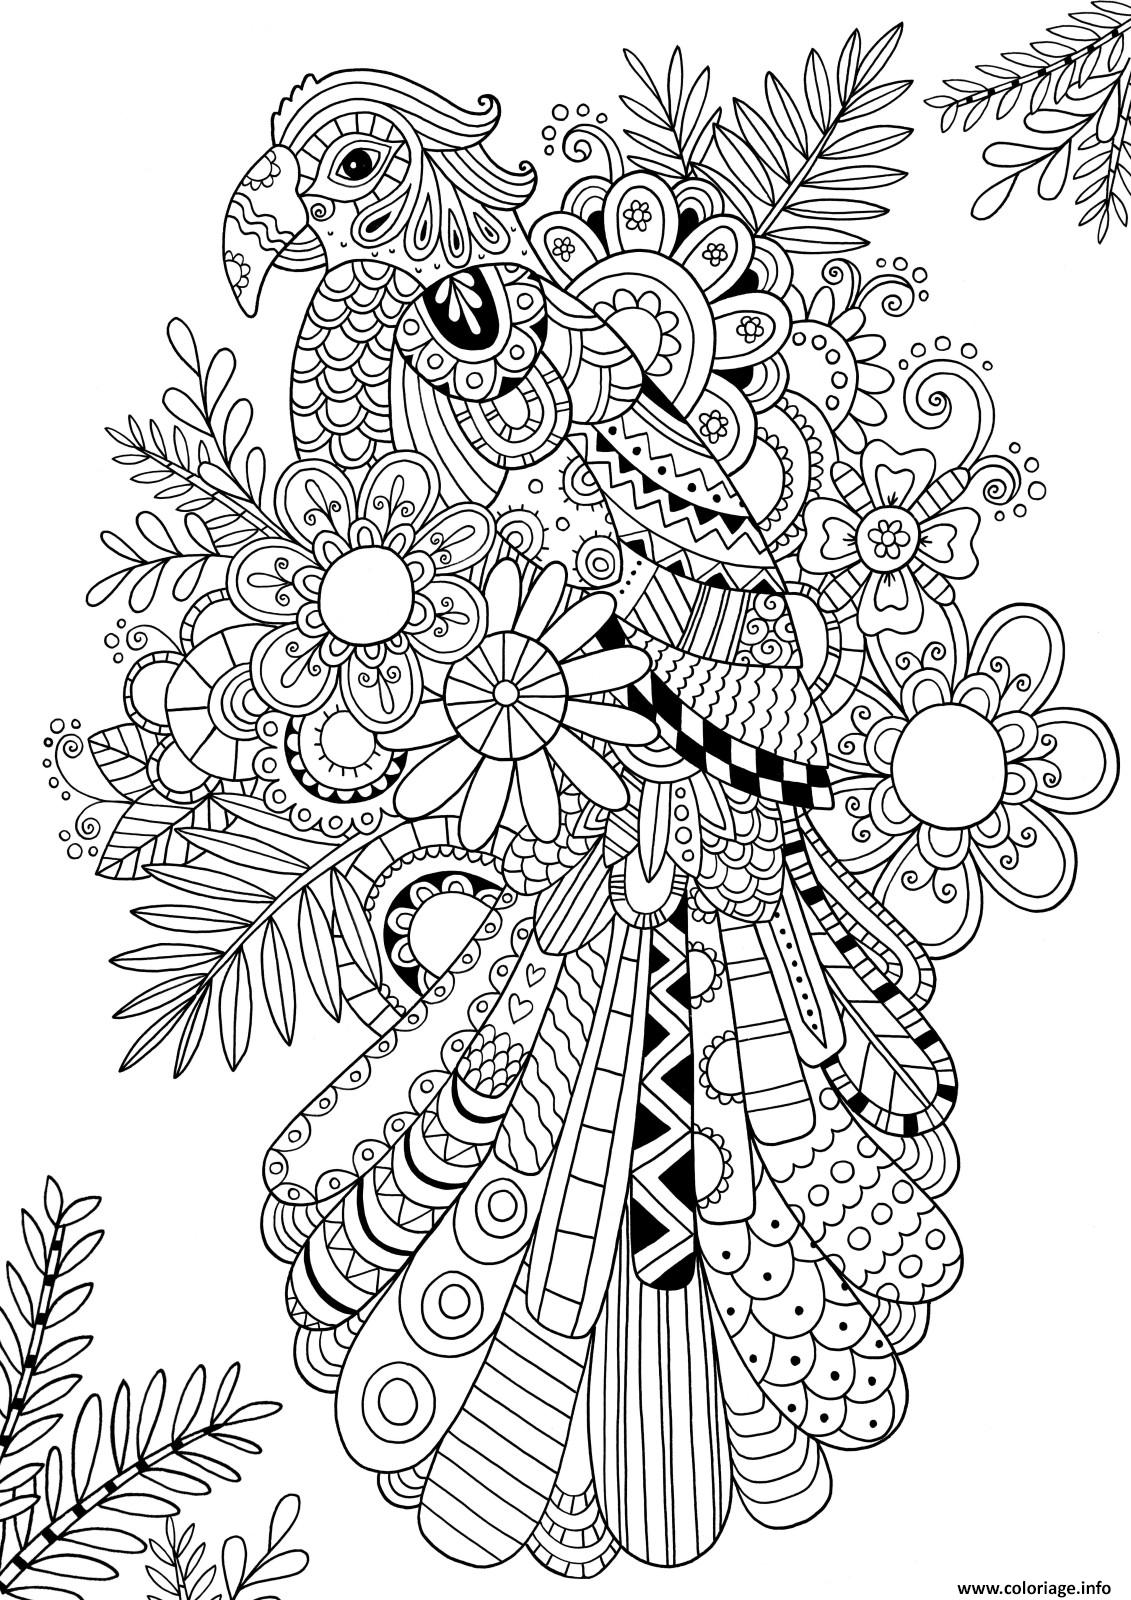 Dessin A Colorier Perroquet Coloriage Zentangle Perroquet Oiseau Adulte Dessin